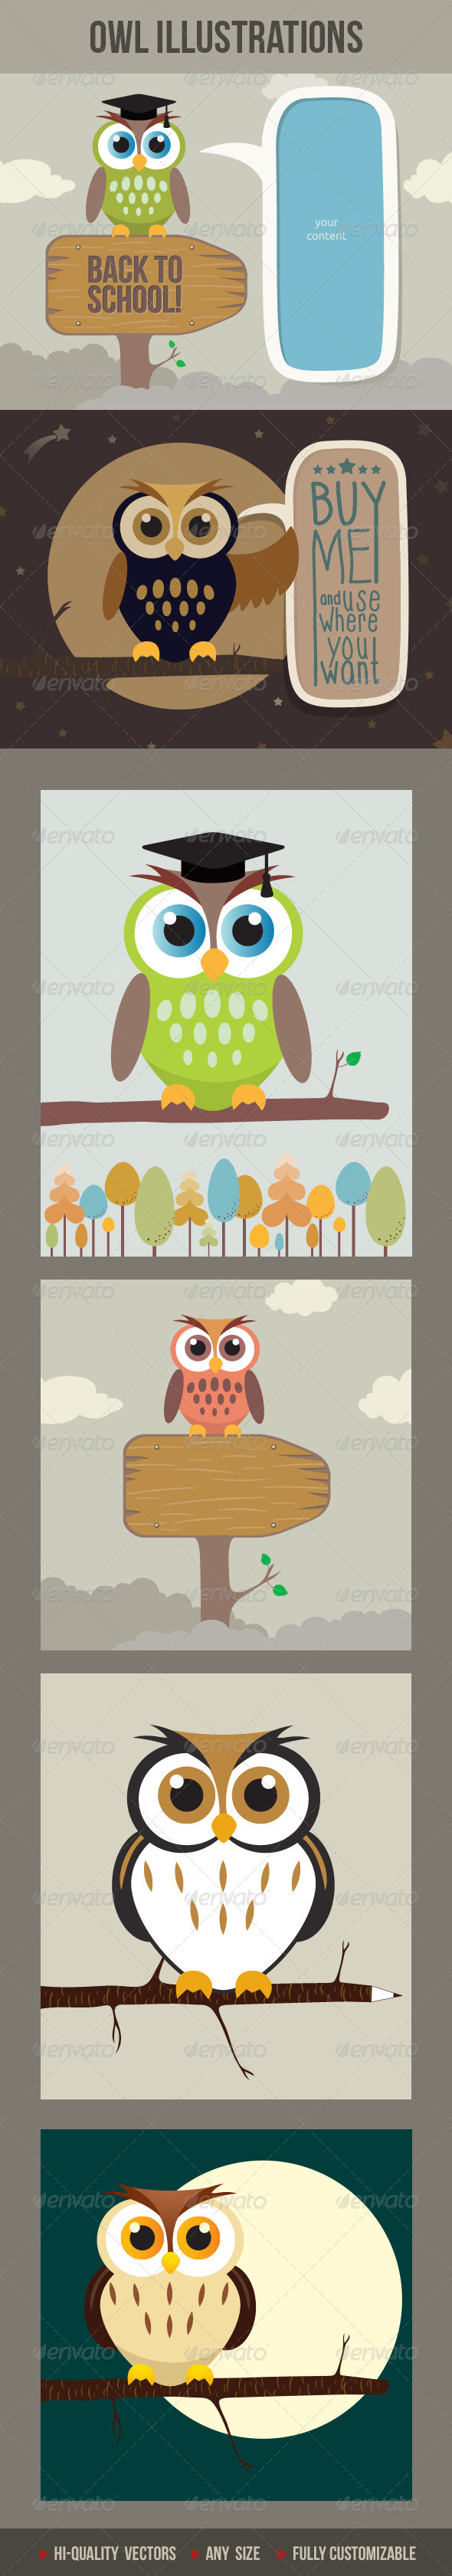 Cartoon Owls - Animals Characters